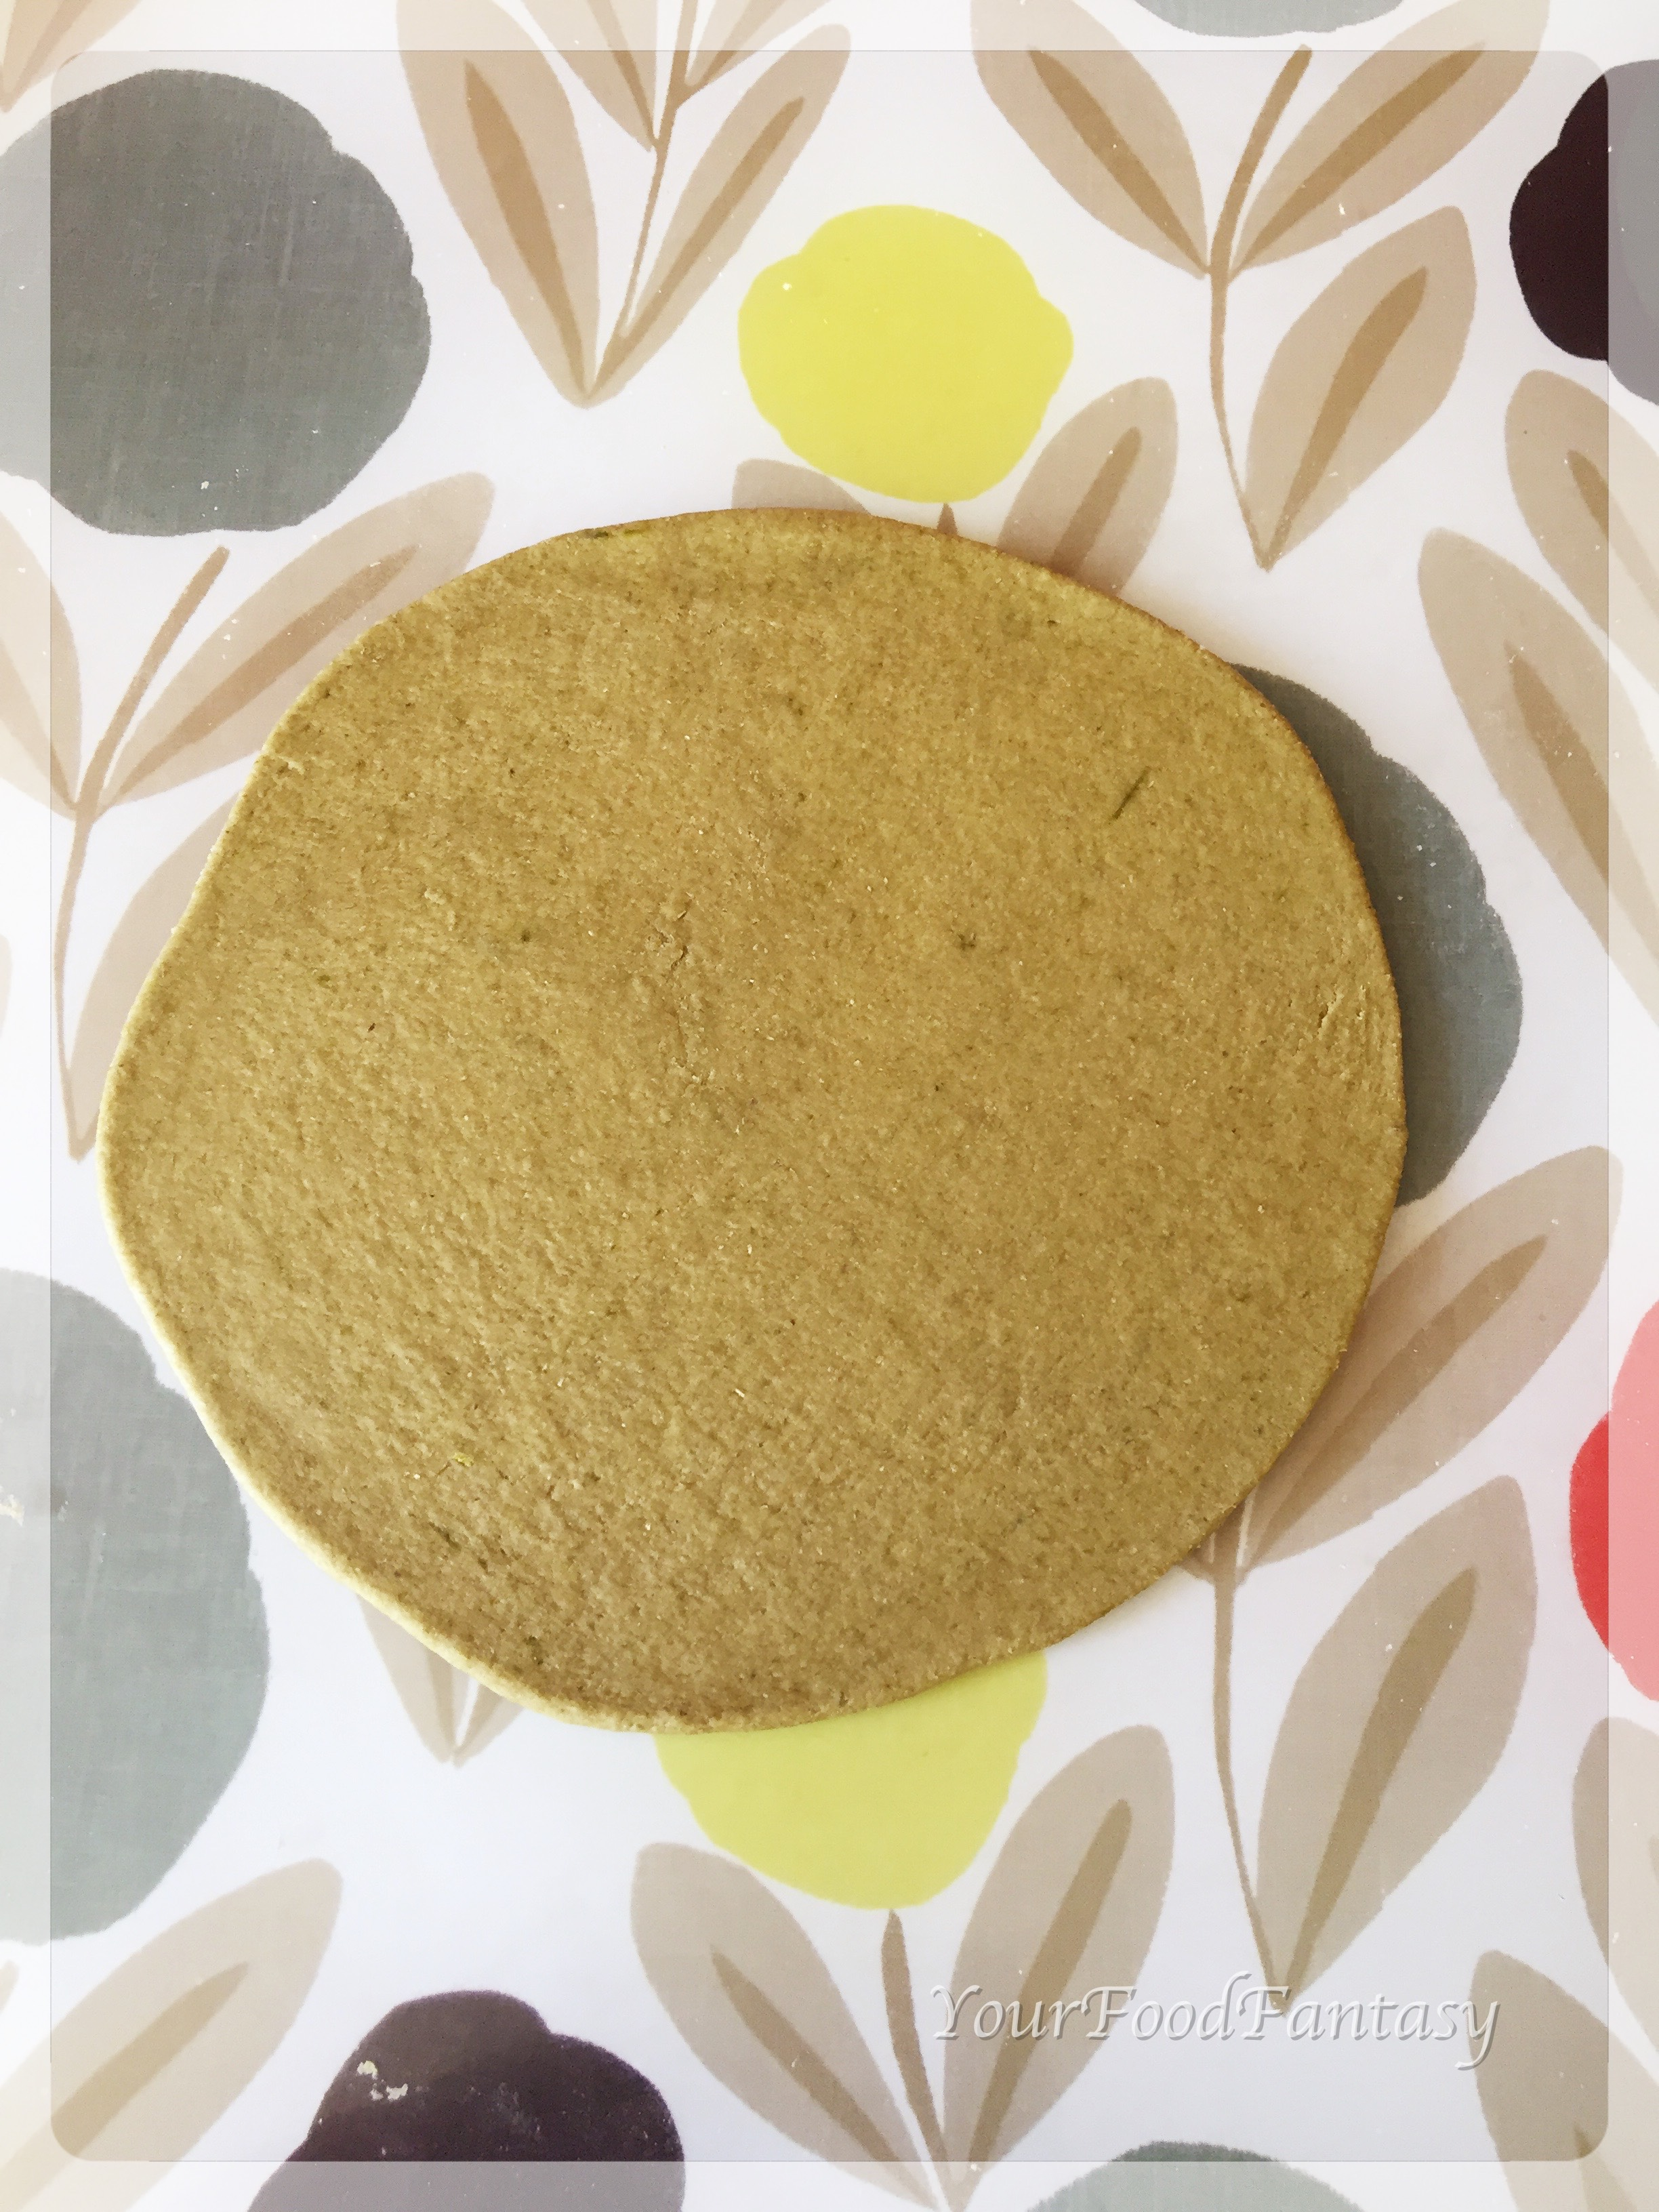 Palak Poori rolled and ready to be fried